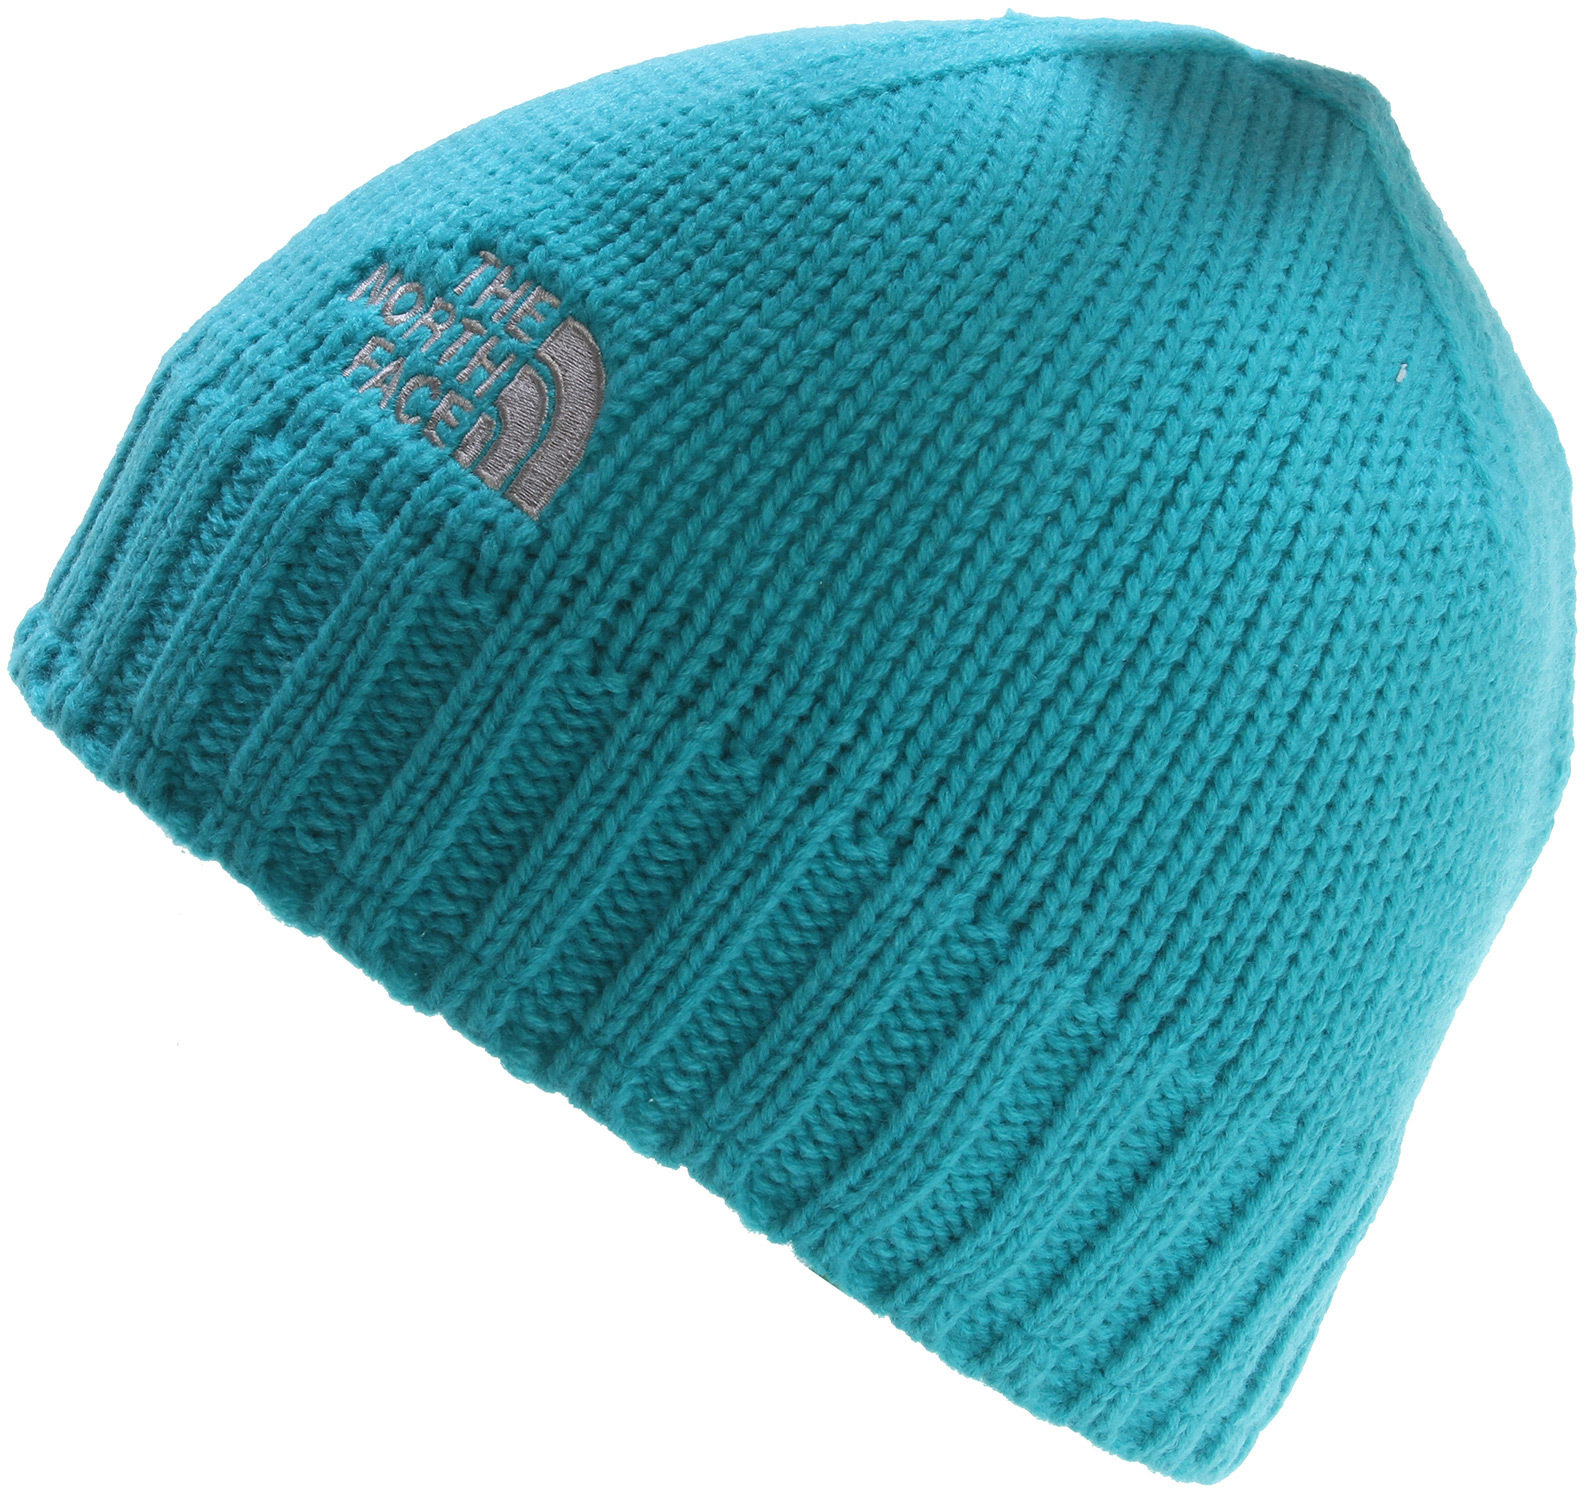 Camp and Hike Fully fashioned for a great fit across your noggin, and hides your helmet hair after a day on the mountain.Key Features of The North Face Tenth Peak Beanie:    100% Acrylic; 100% Recycled polyester fleece ear bnd    Fully Fashioned    Unisex    Embroidered logo - $20.95